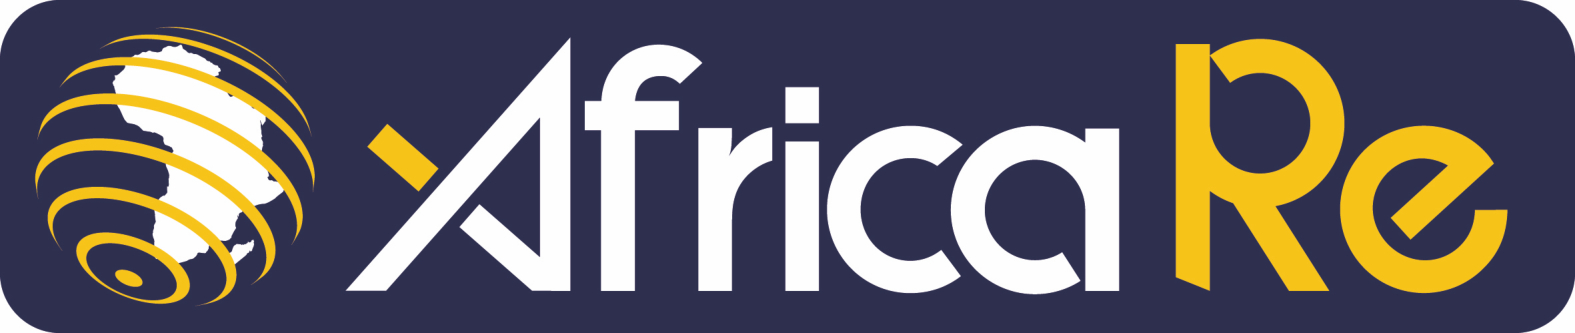 lis-Africa-Re-Logo-MASTER-23August-2018-a-